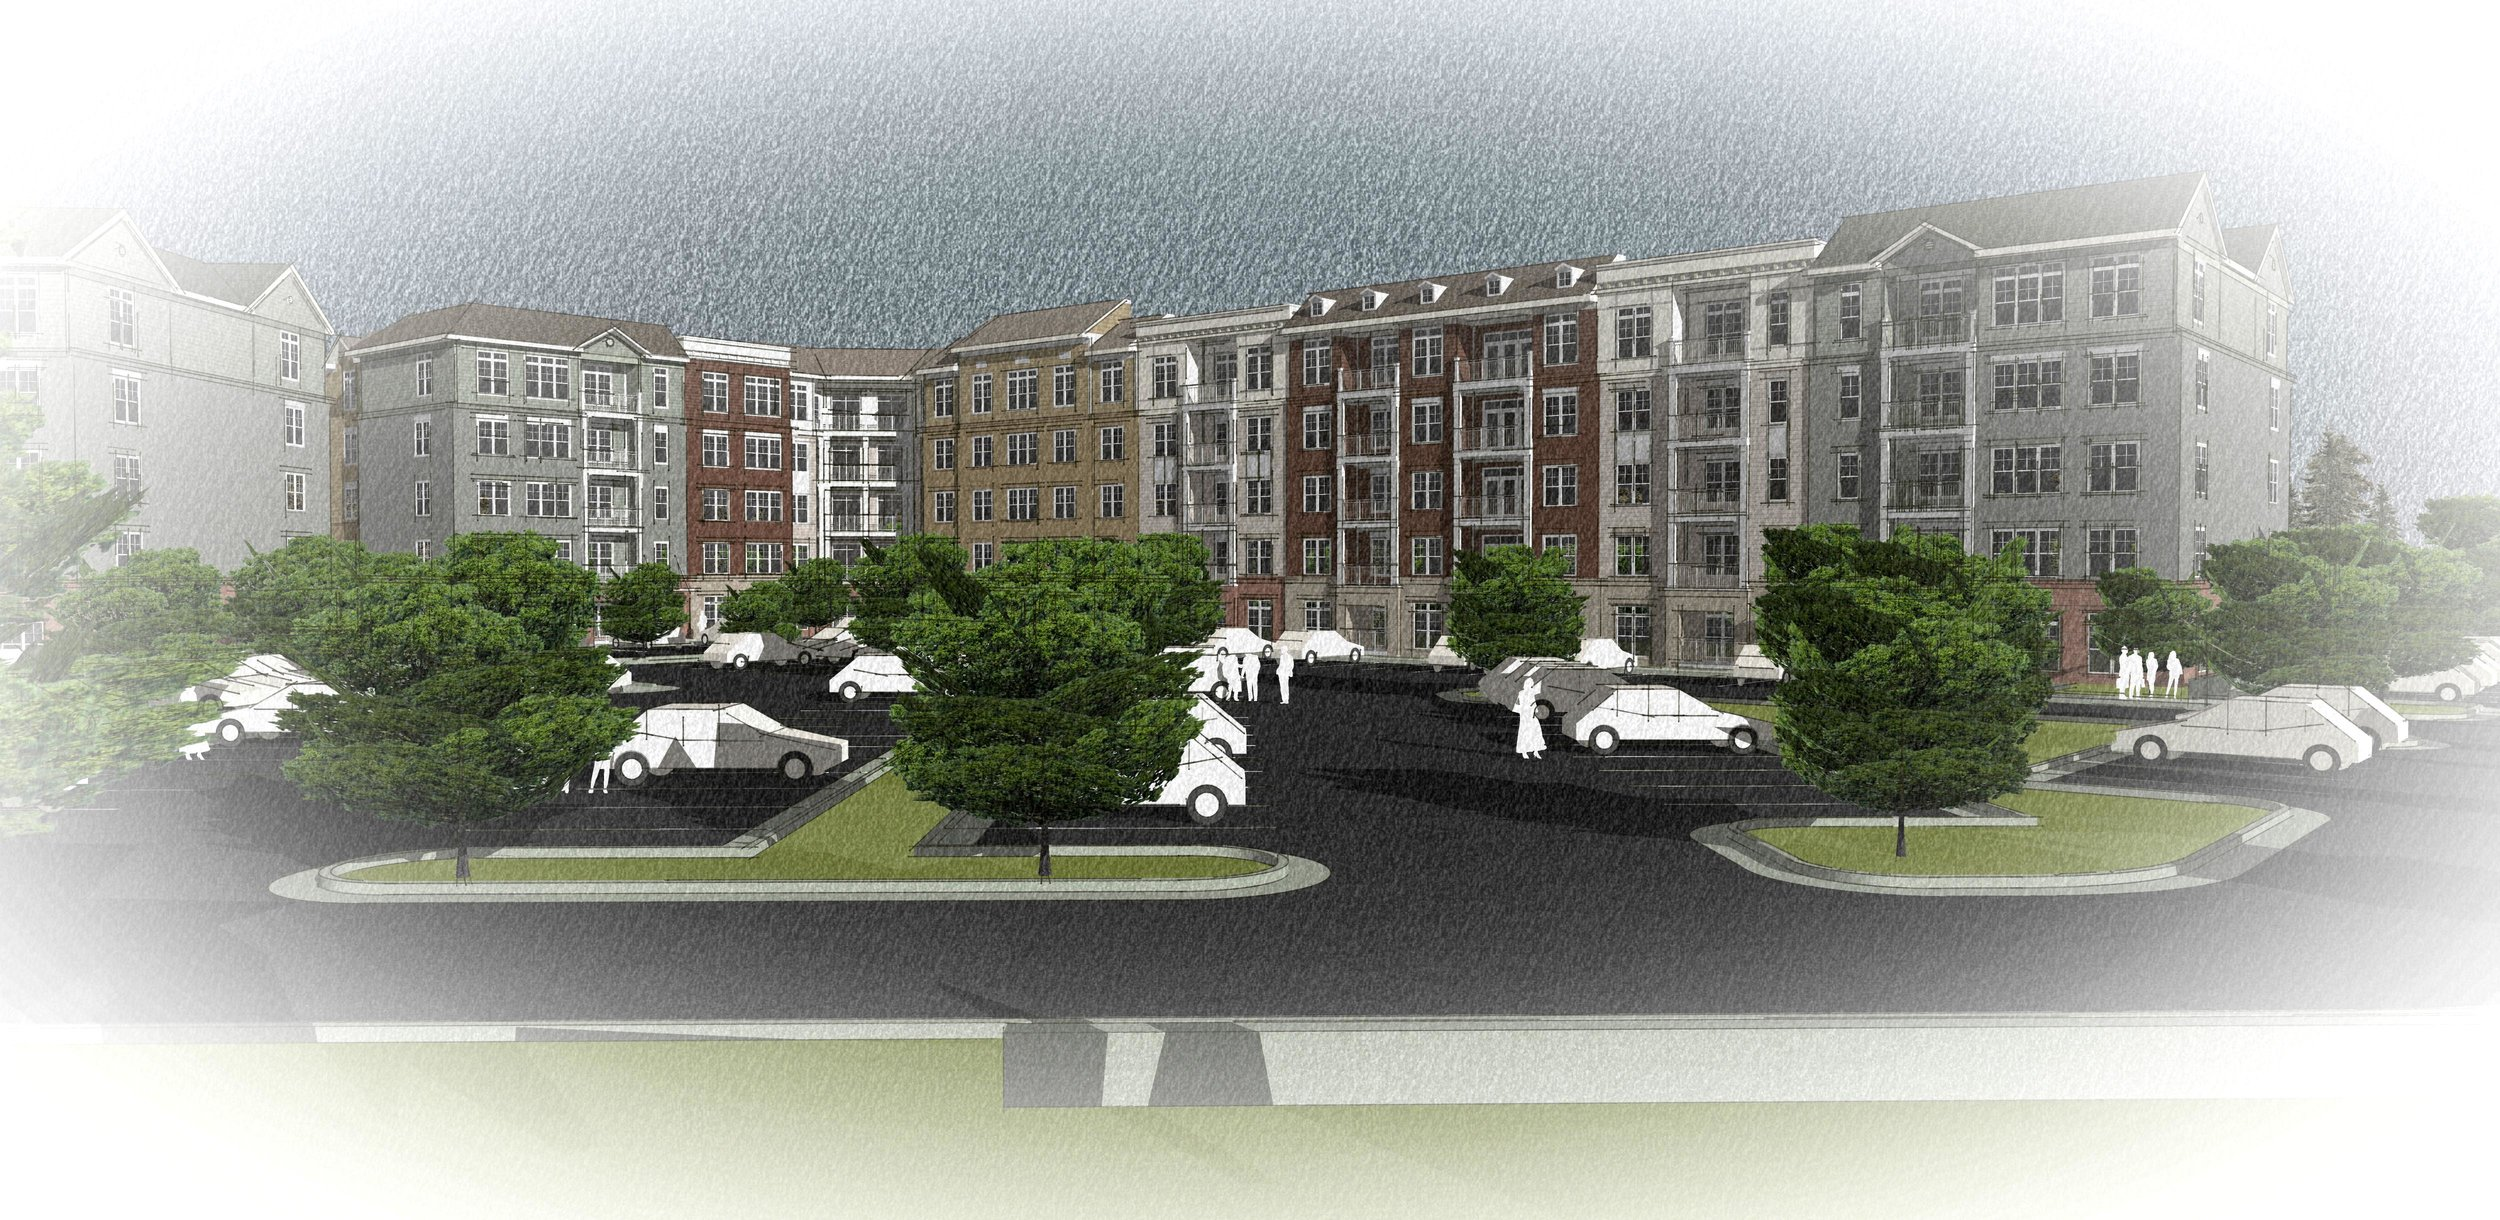 Senior Housing  - Proposed elevations showing variations in building colors and materials and easily accessible off-street parking.